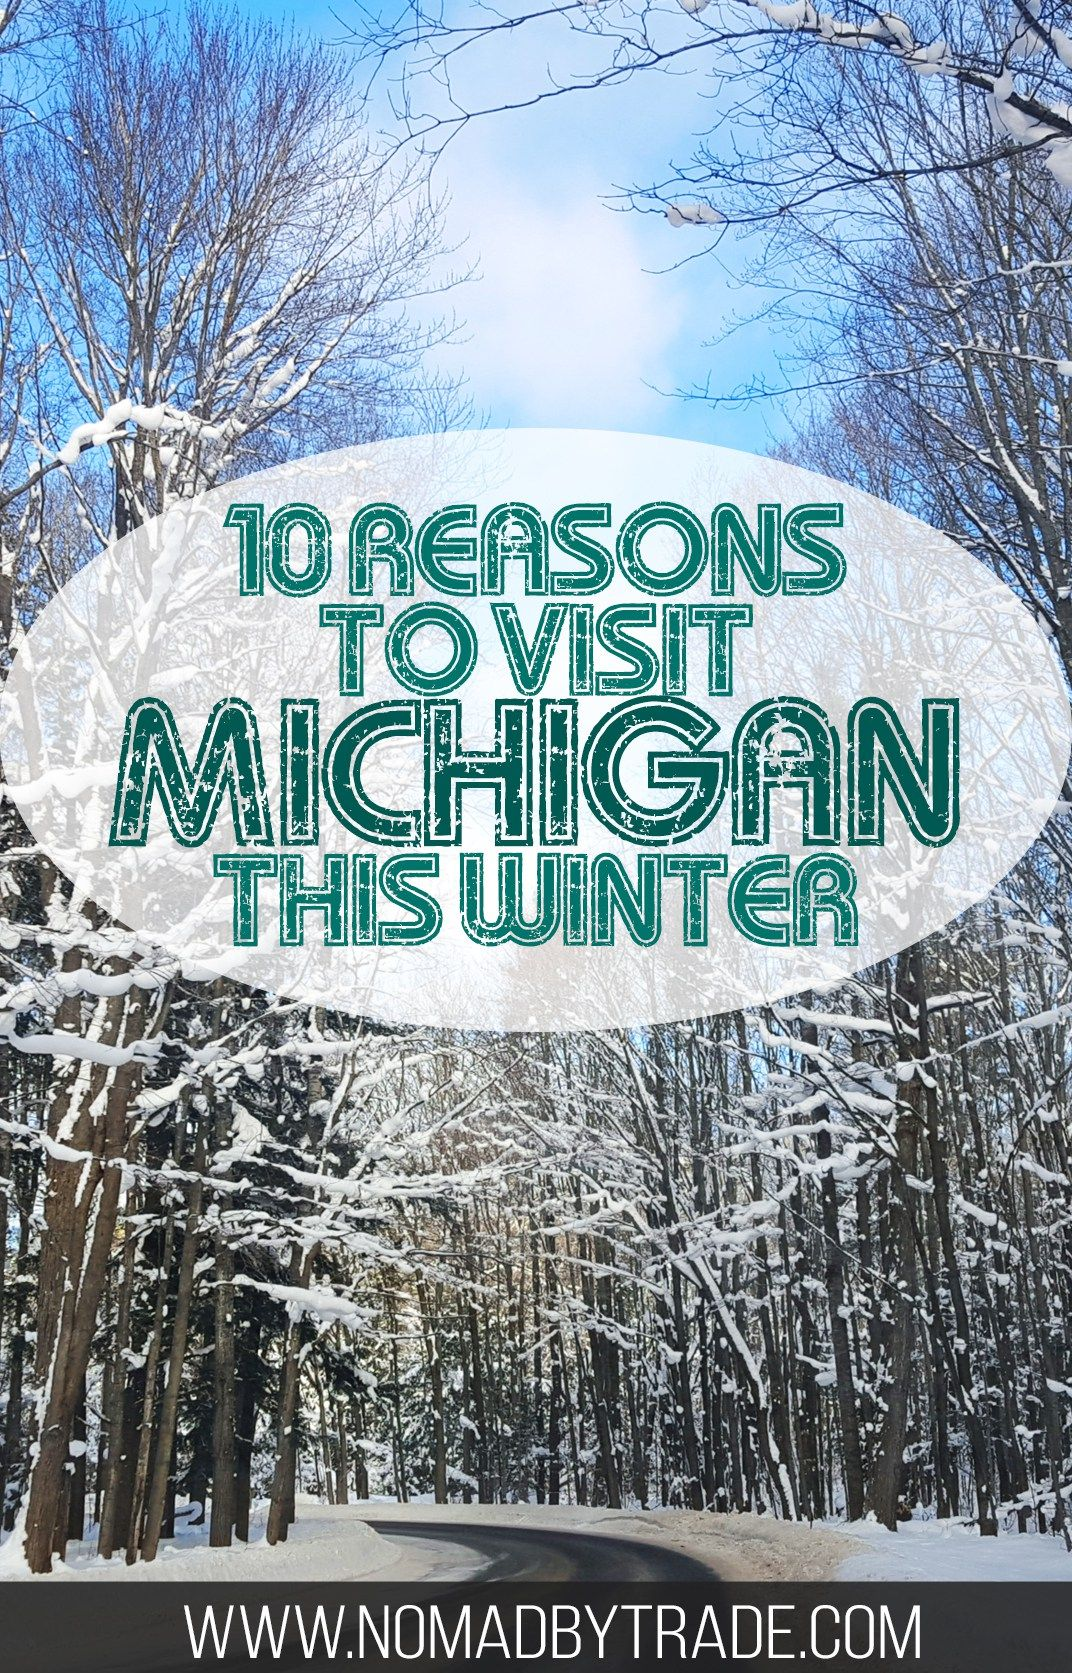 Ten Great Things To Do In Michigan In Winter With Images Europe Winter Travel Winter Travel Michigan Travel